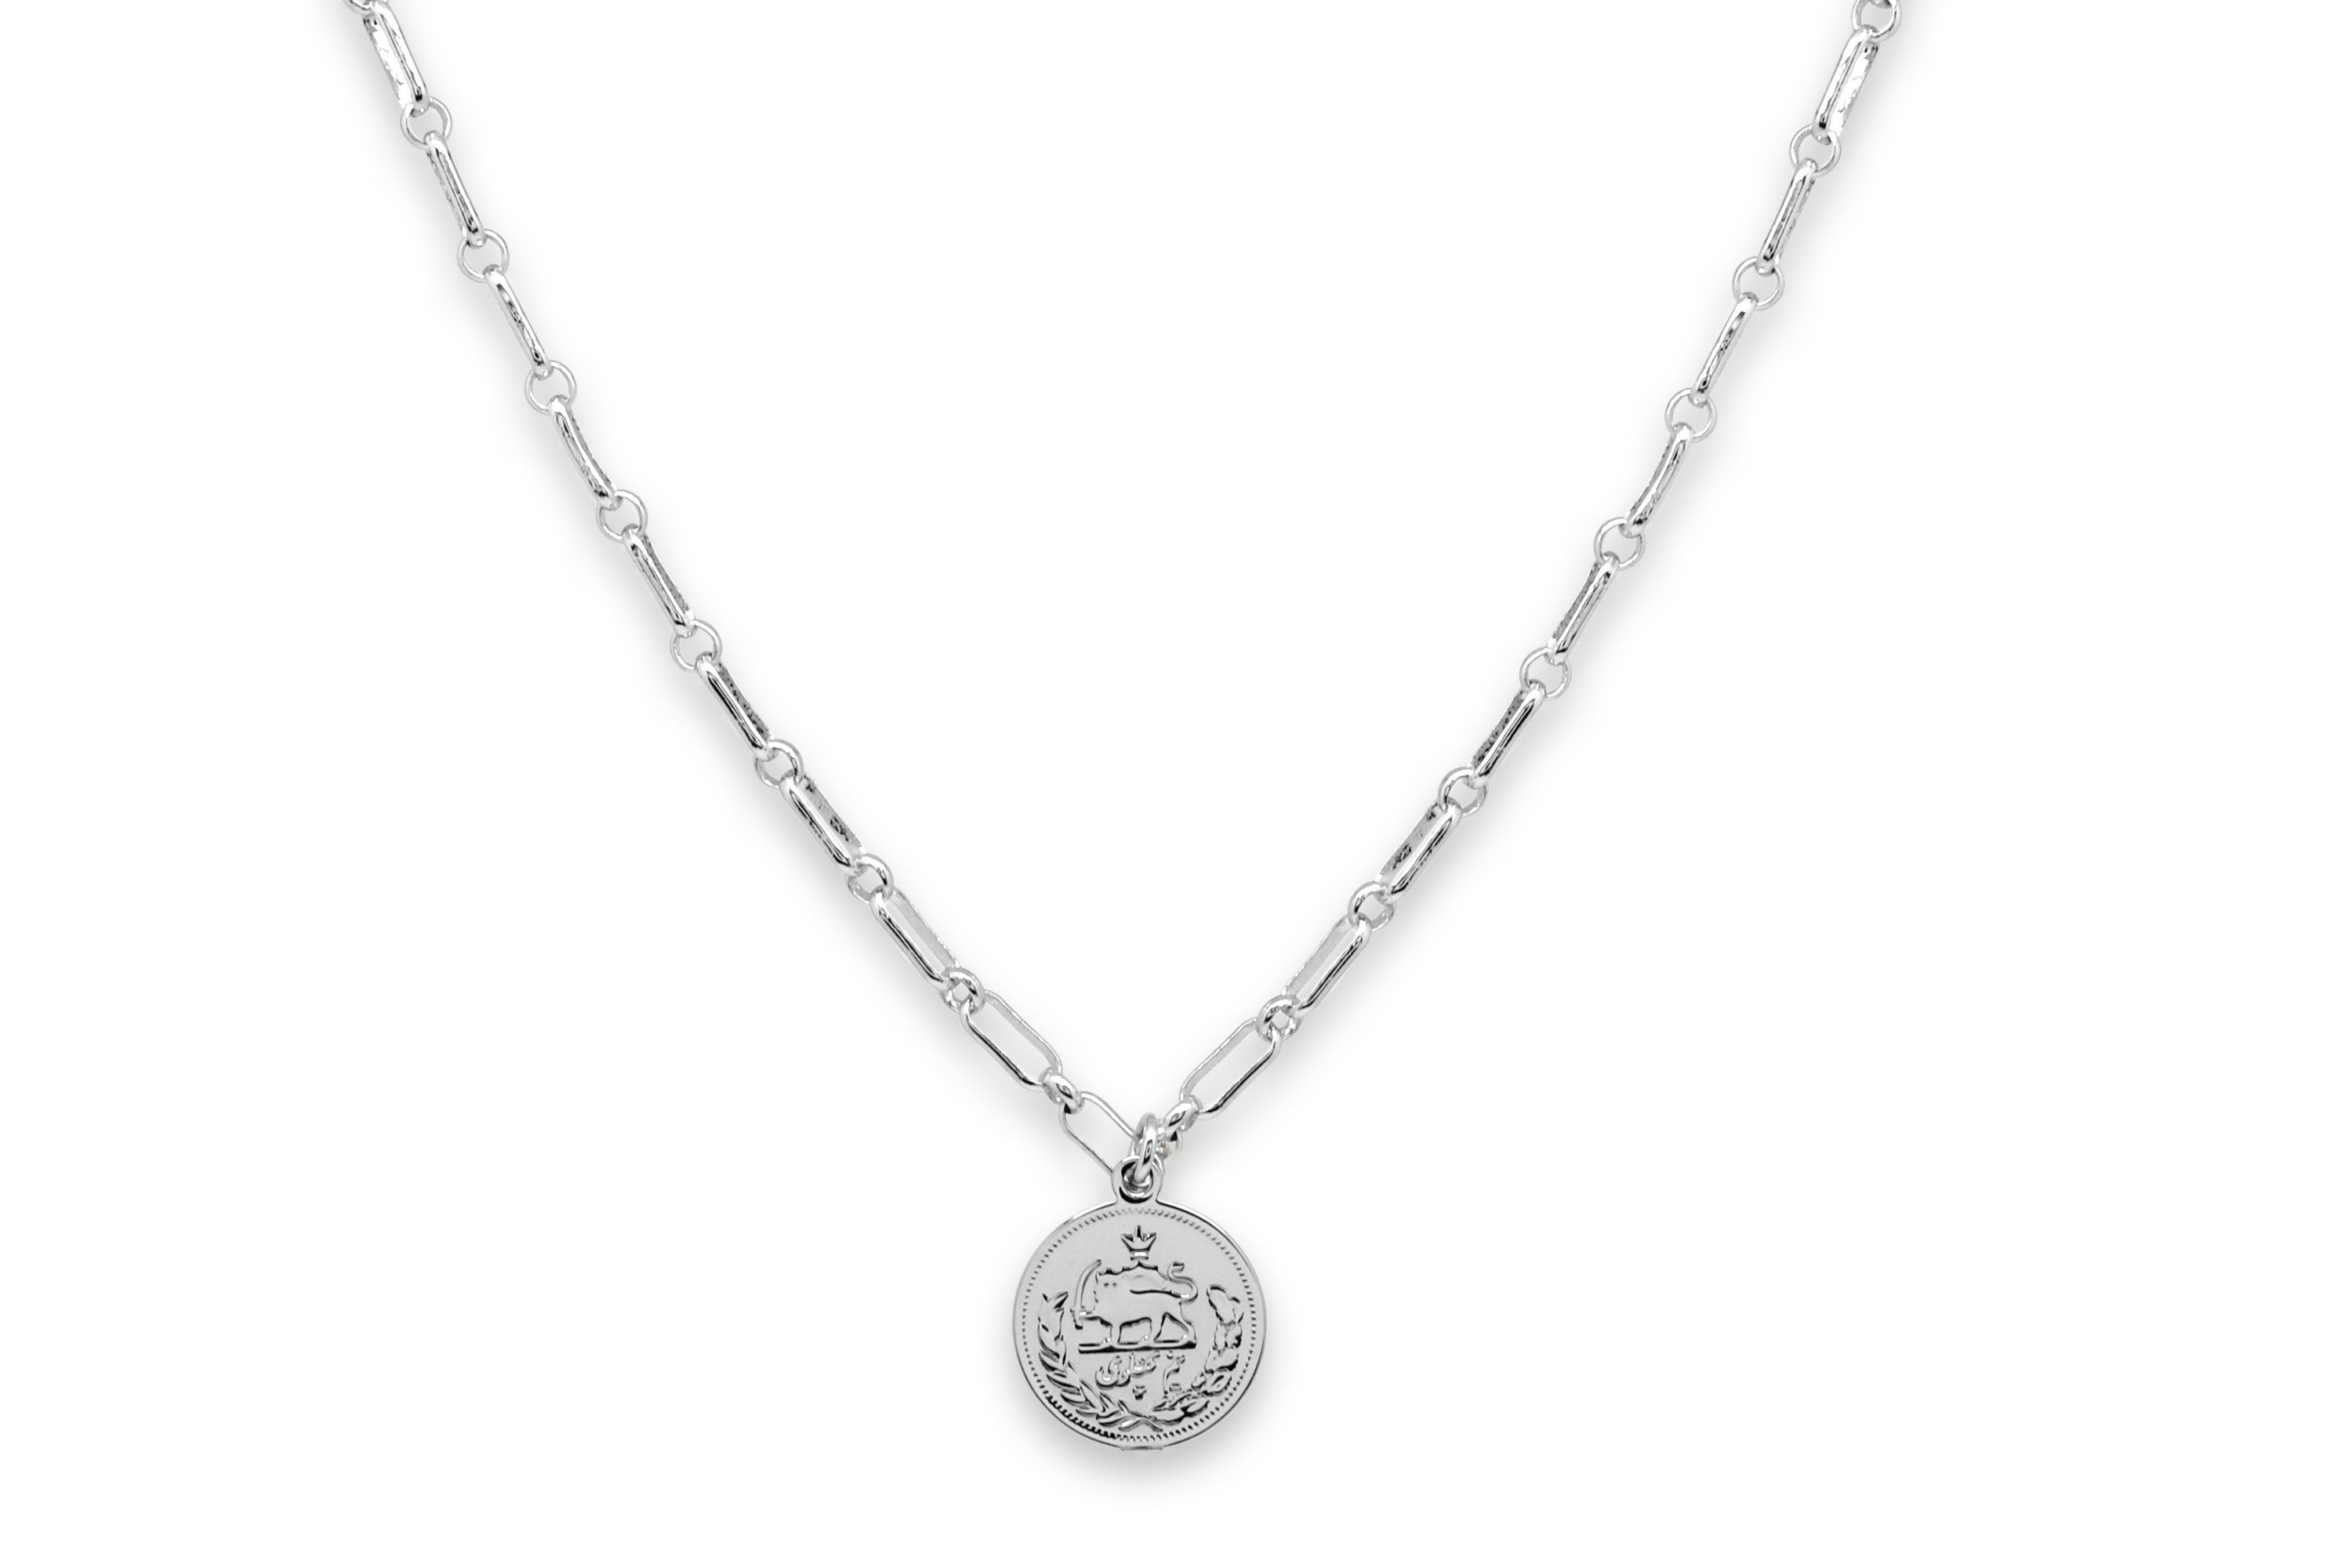 Dewi Silver Cable Chain Necklace with Coin Pendant